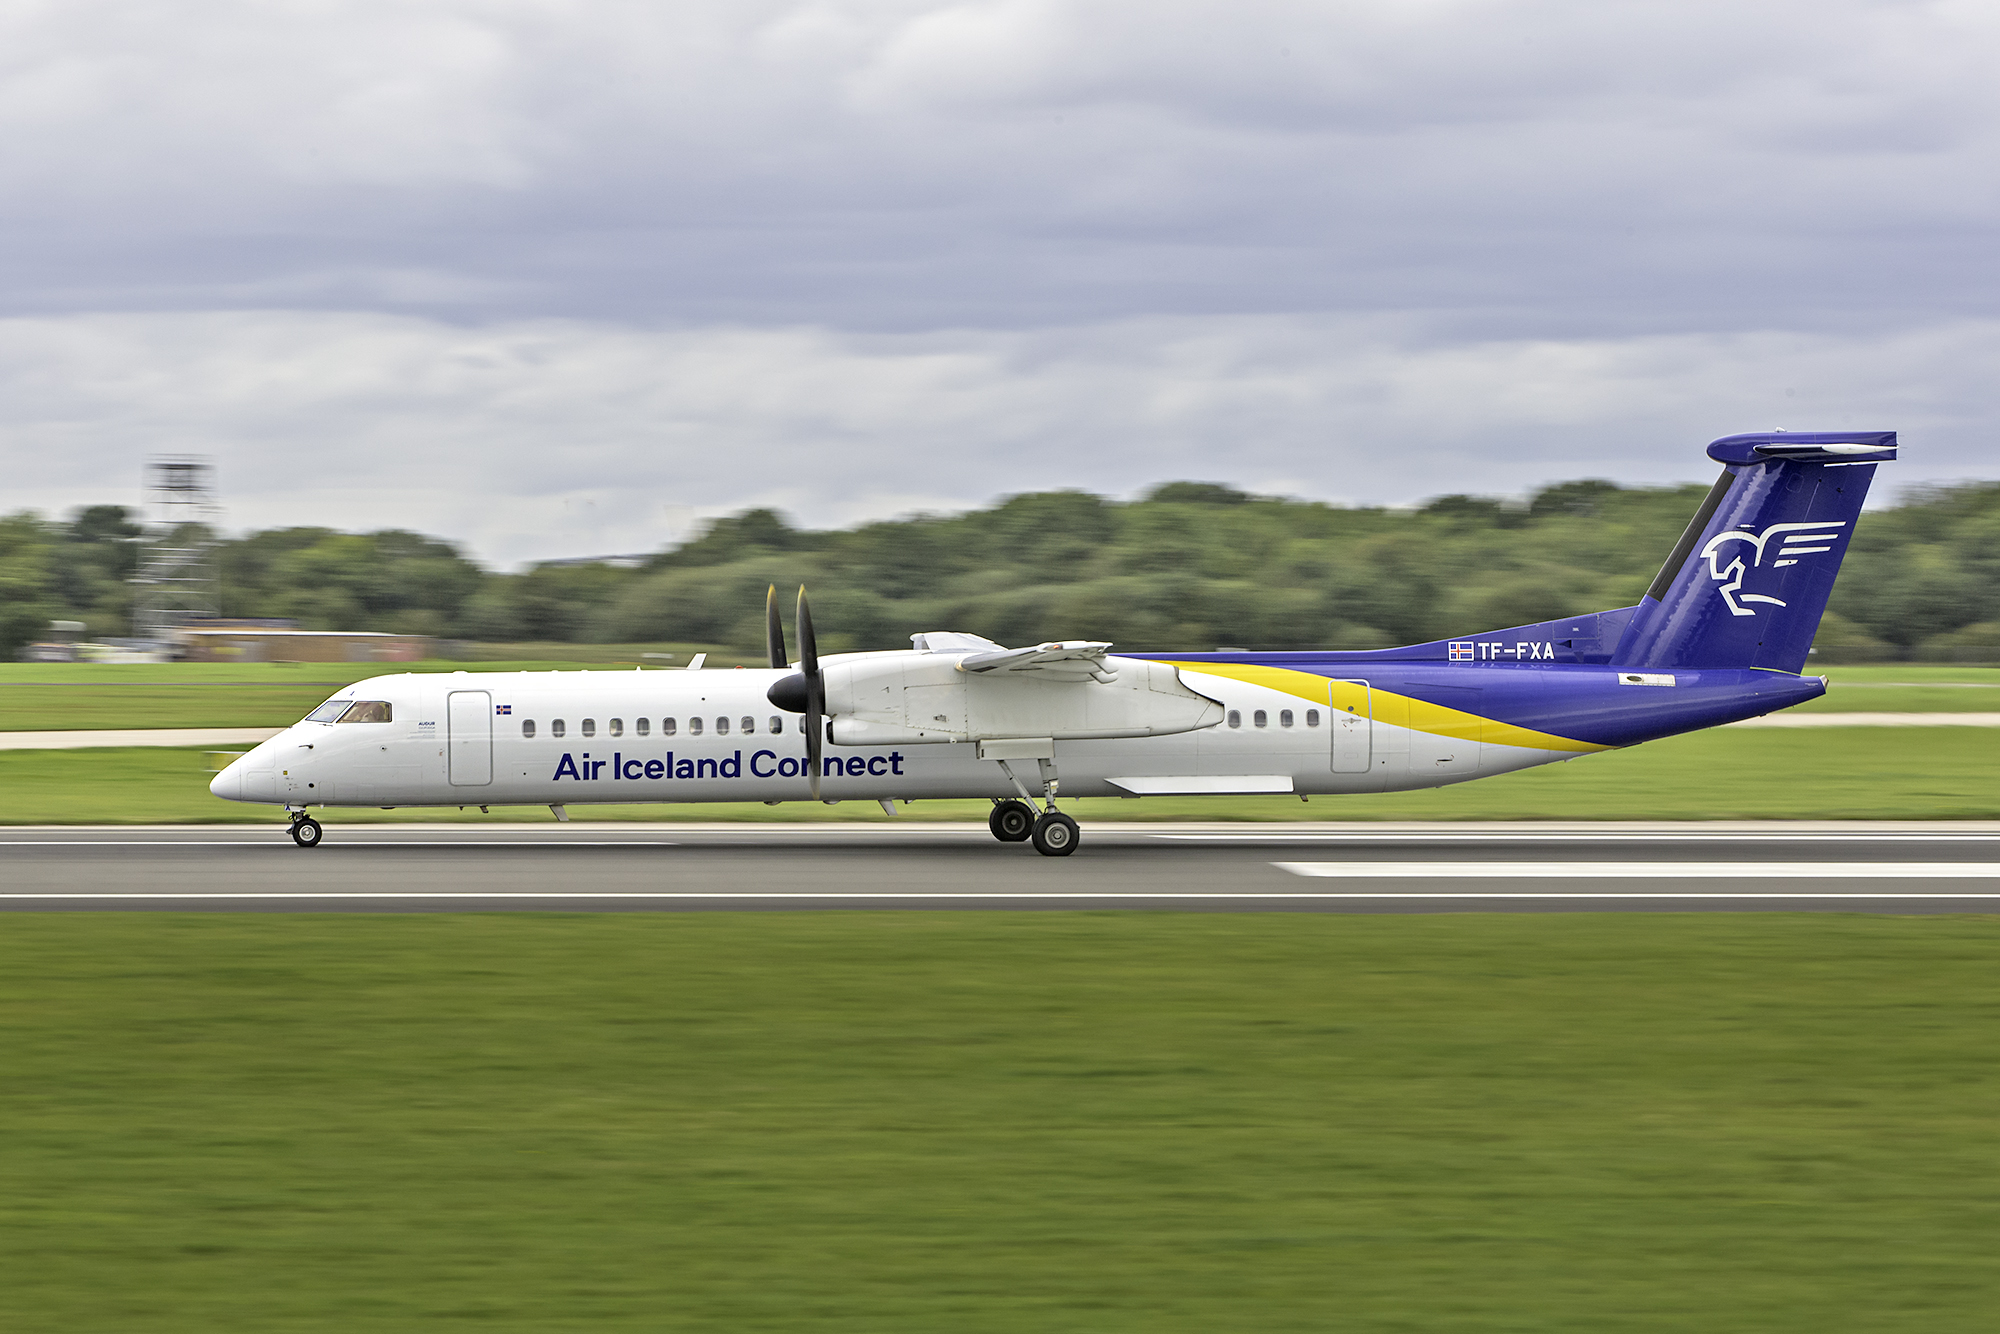 Air Iceland Connect Dash 8 TF-FXA was nicely captured gaining momentum for departure on 23 Left by Paul Bailey on 2nd September 2019.